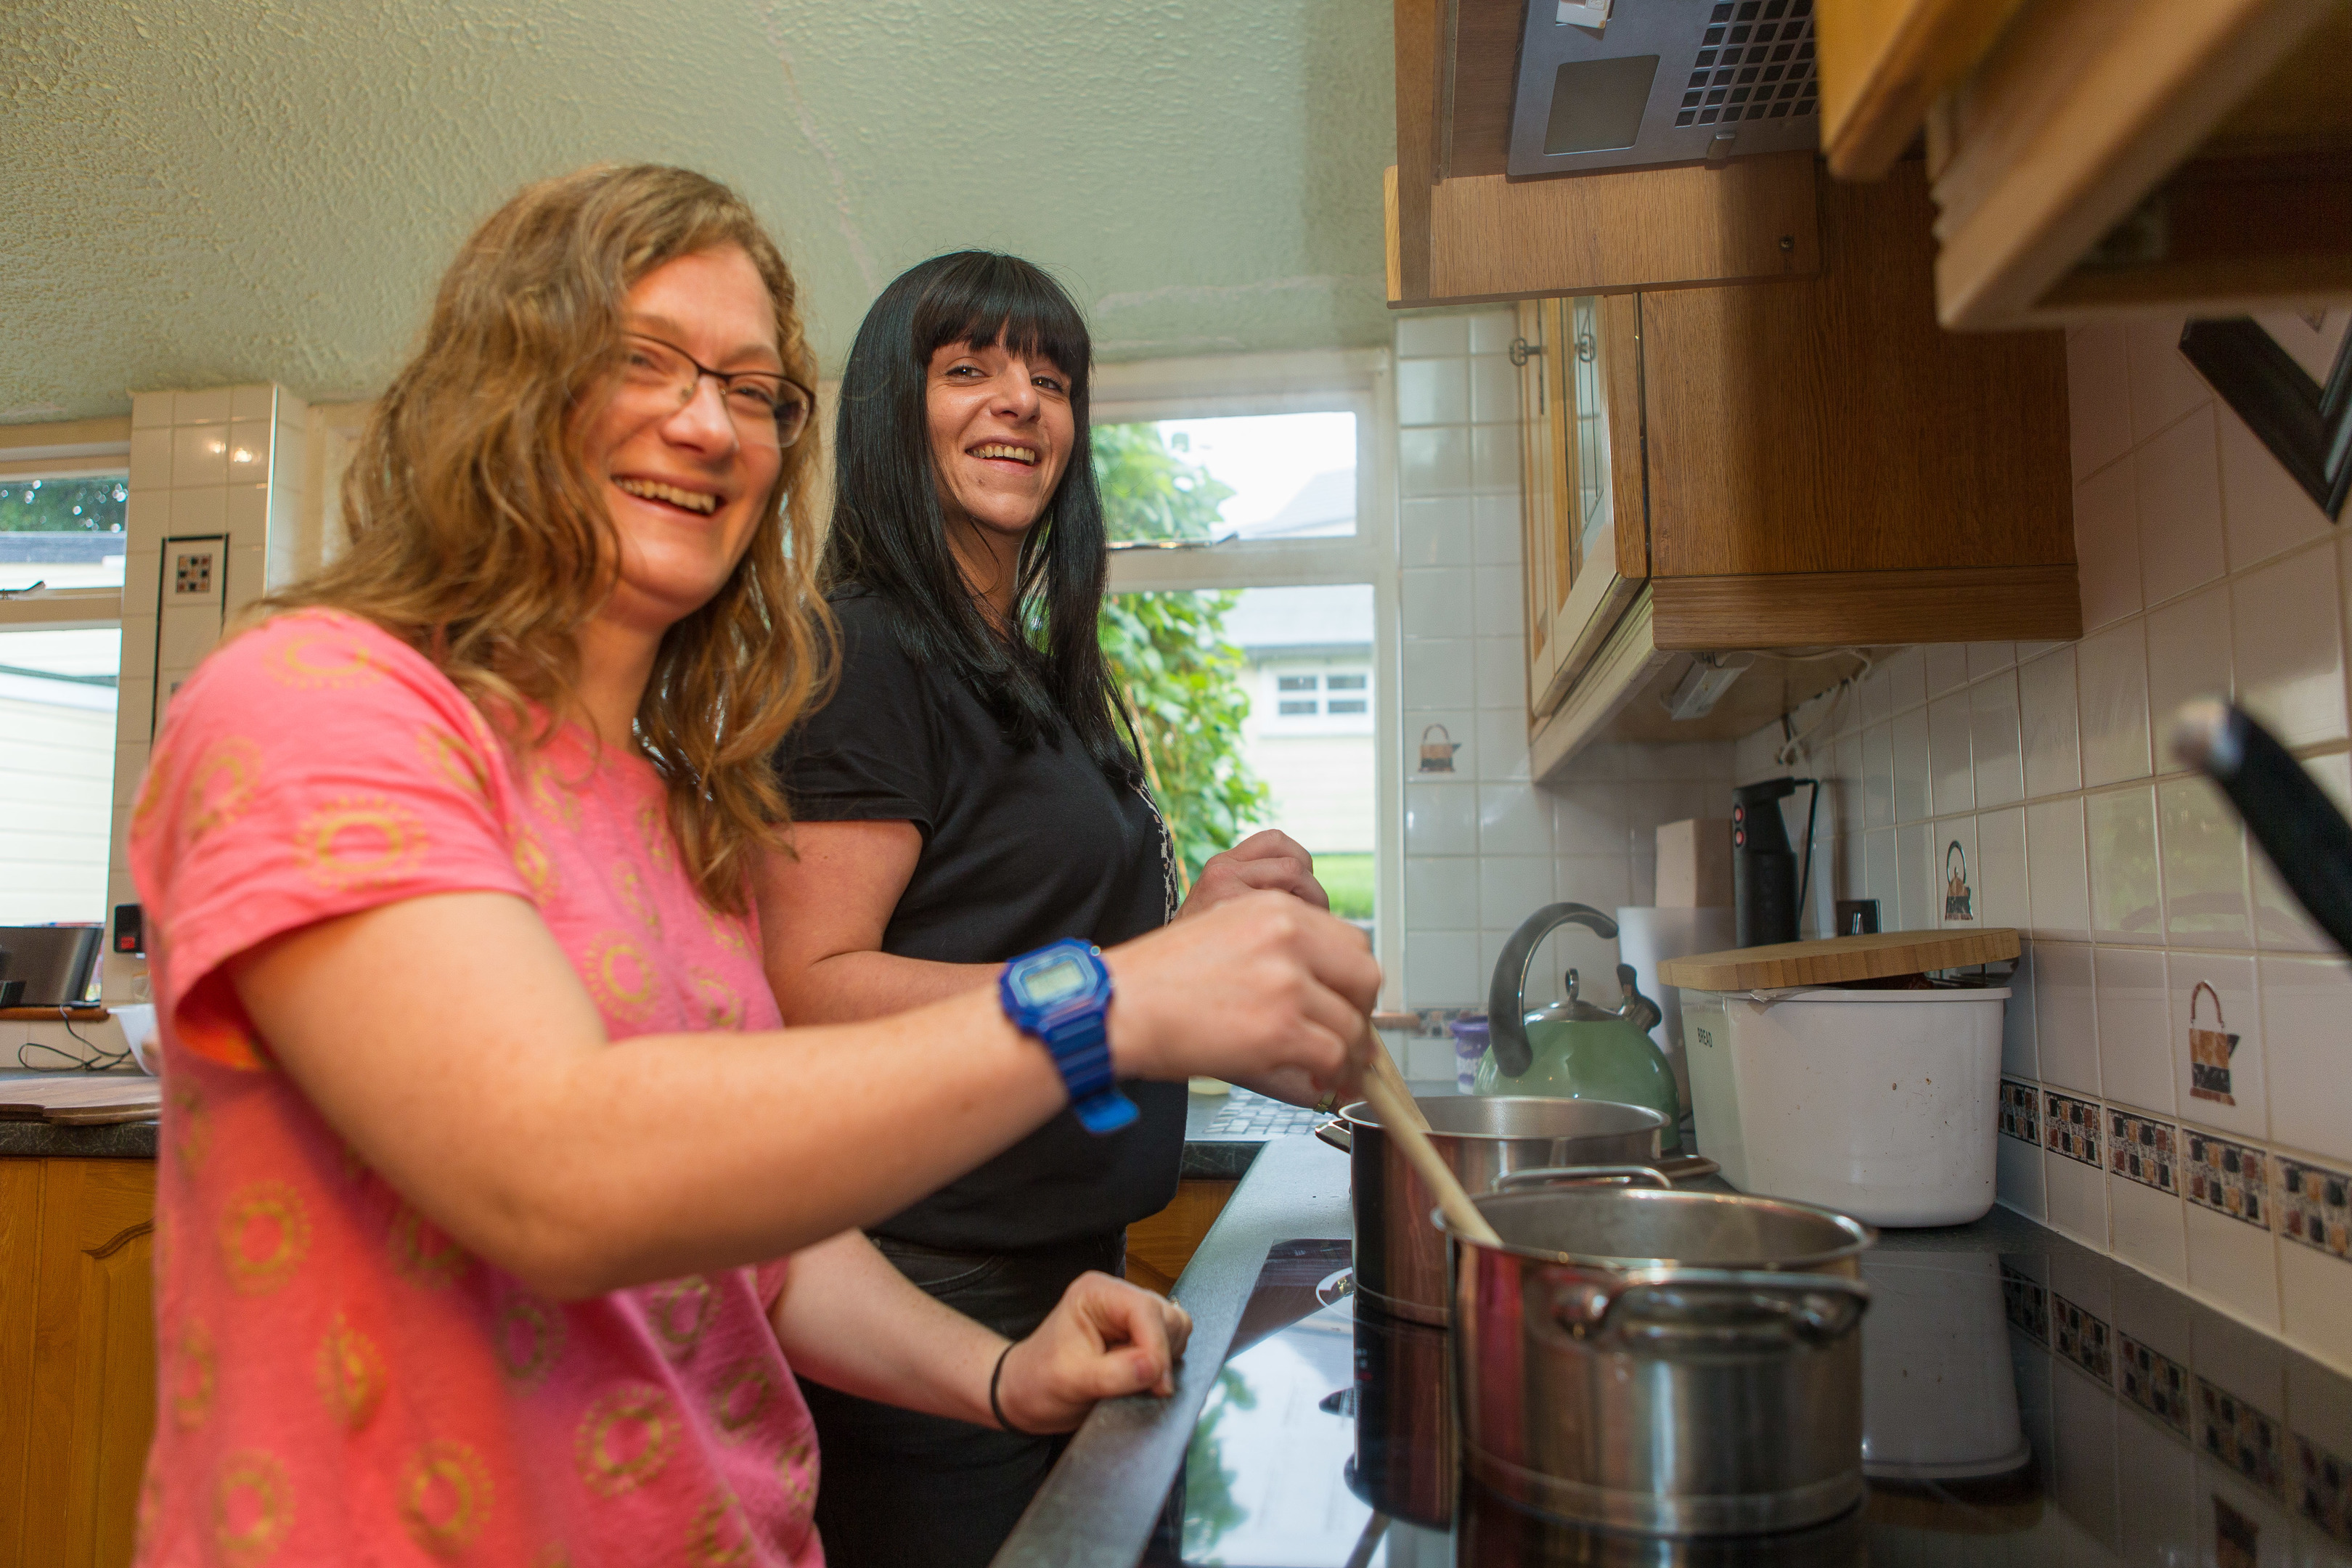 Jennifer Foster, 33,  is a Volunteer Cook with Rhea Long, 34, of The Food Train cooking in the kitchen.